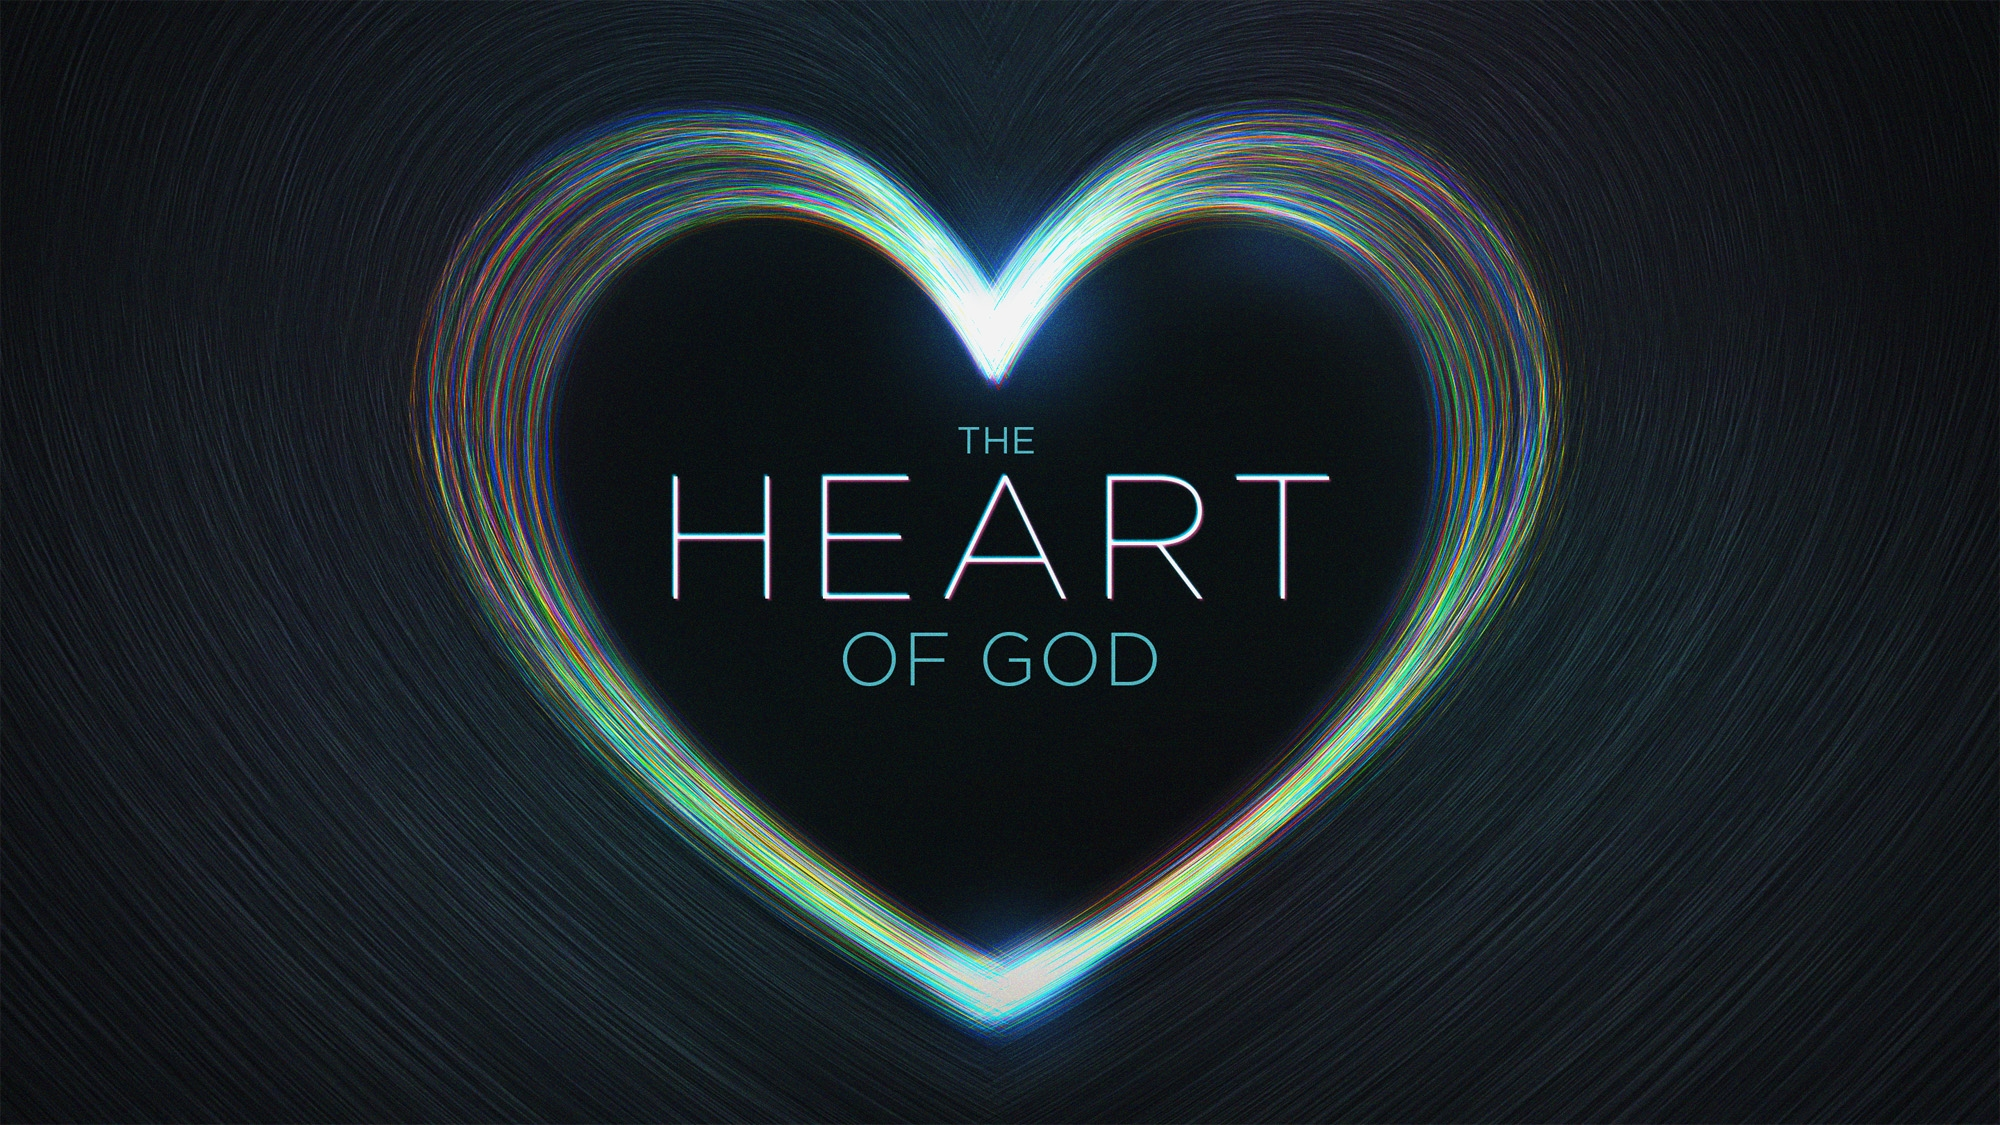 Sunday October 8, 2017 The Heart Of God - Pastor Anthony Cox